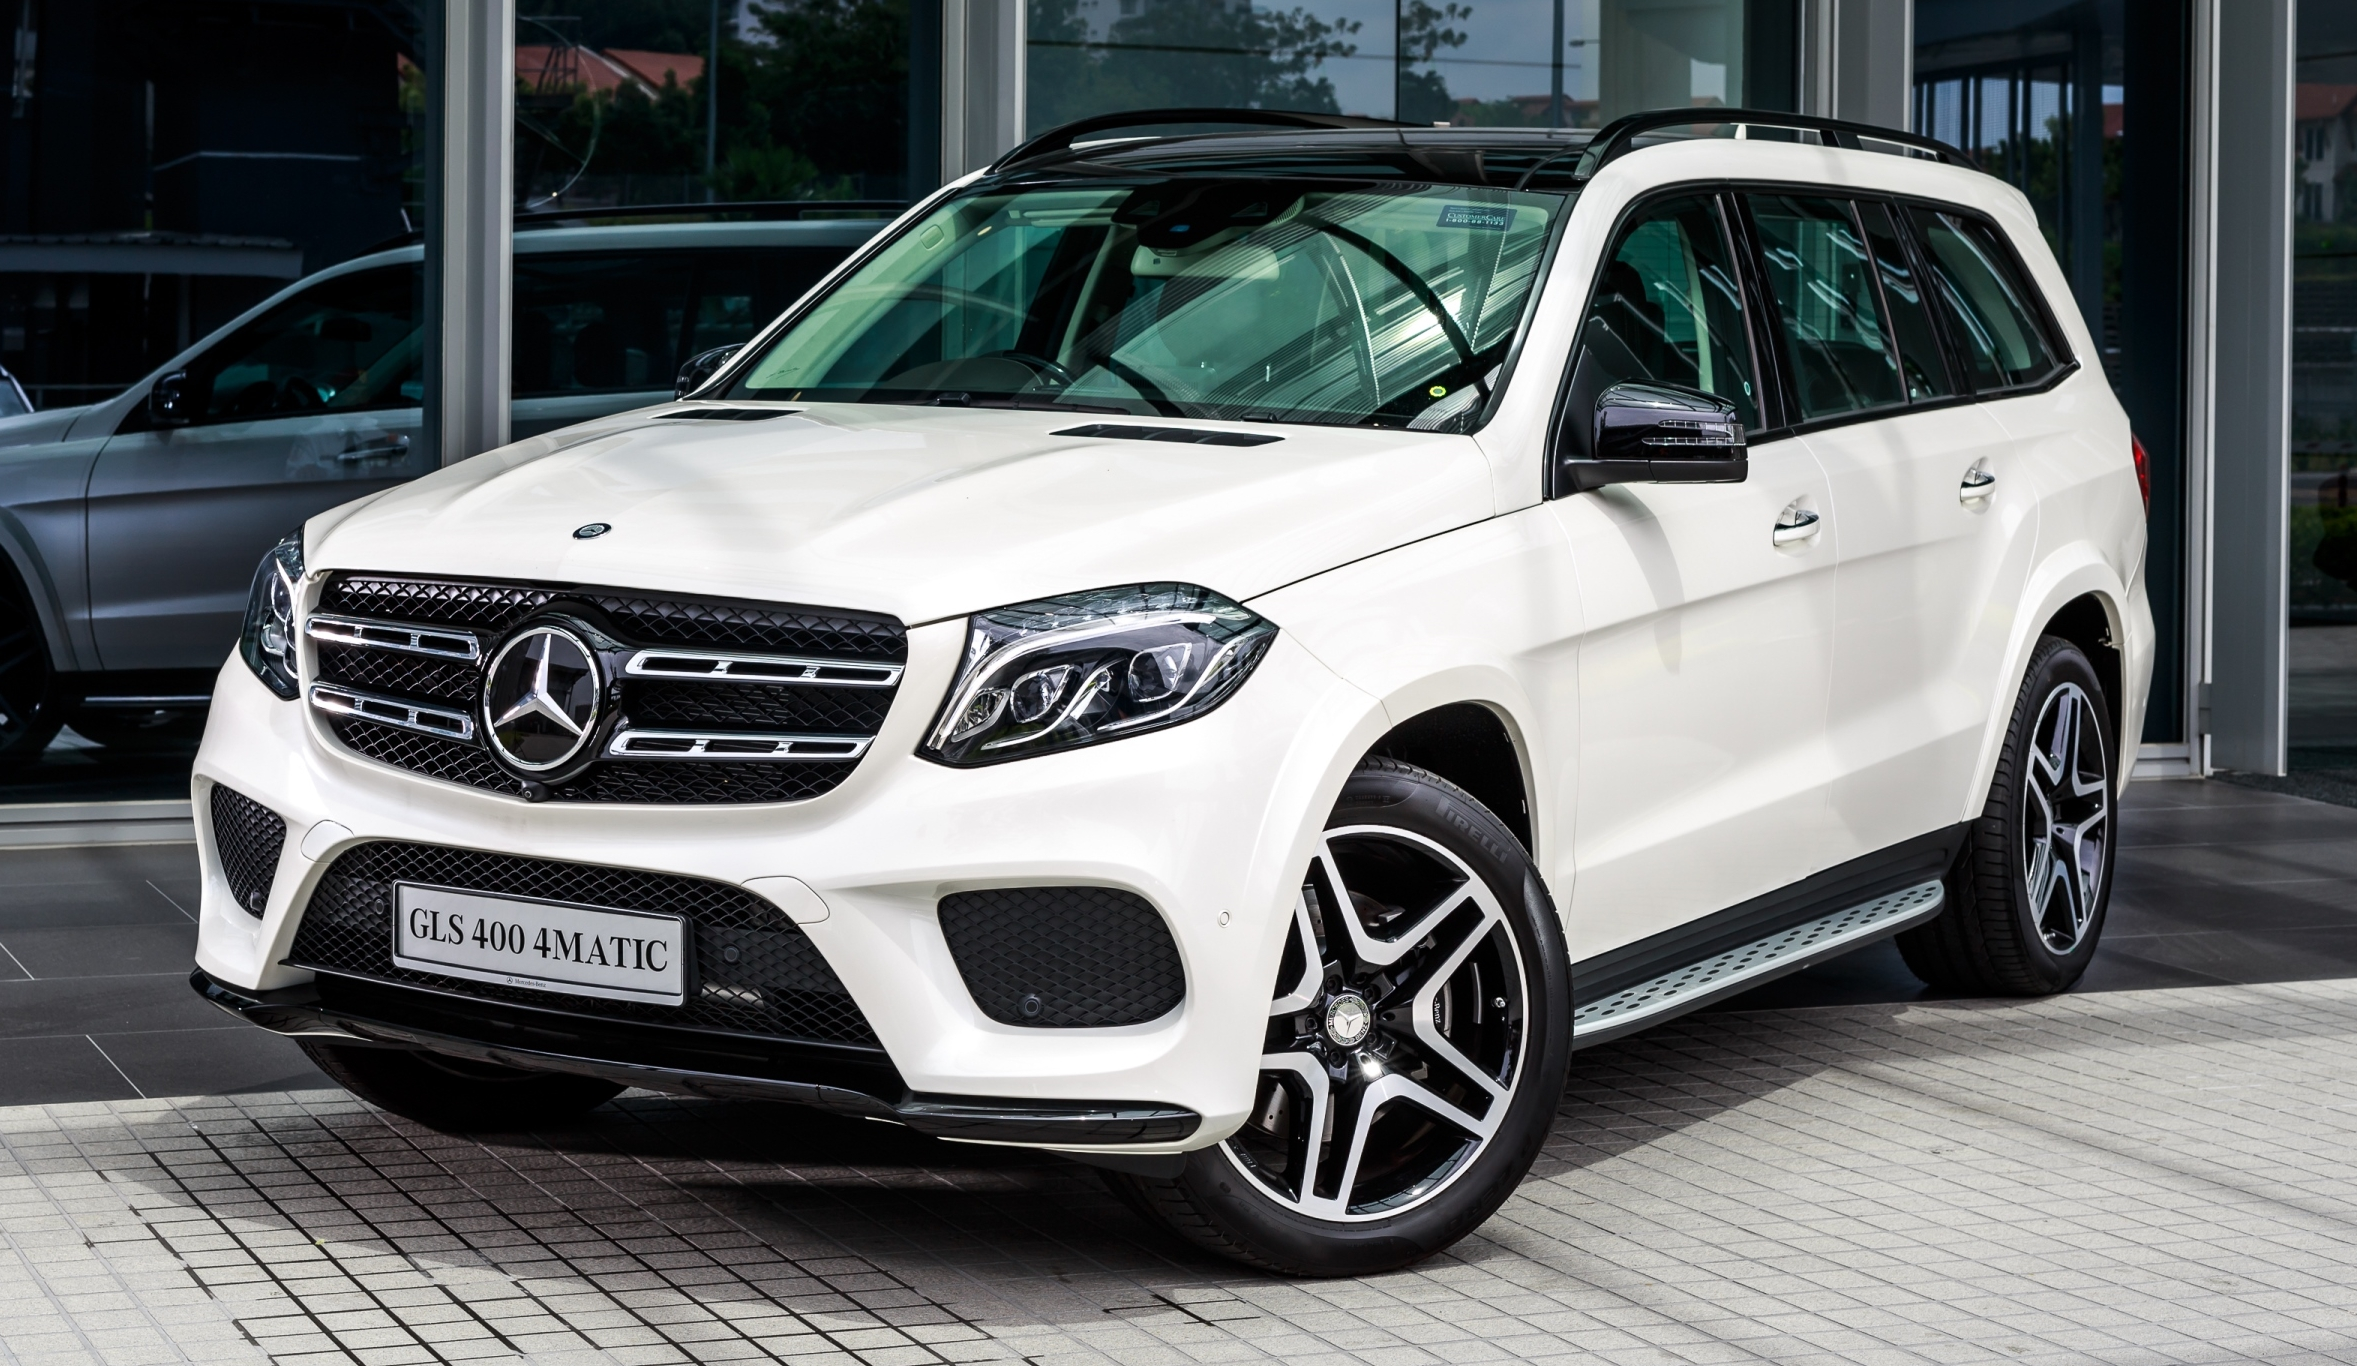 Mercedes benz gls 400 4matic launched rm889k for Gls mercedes benz suv